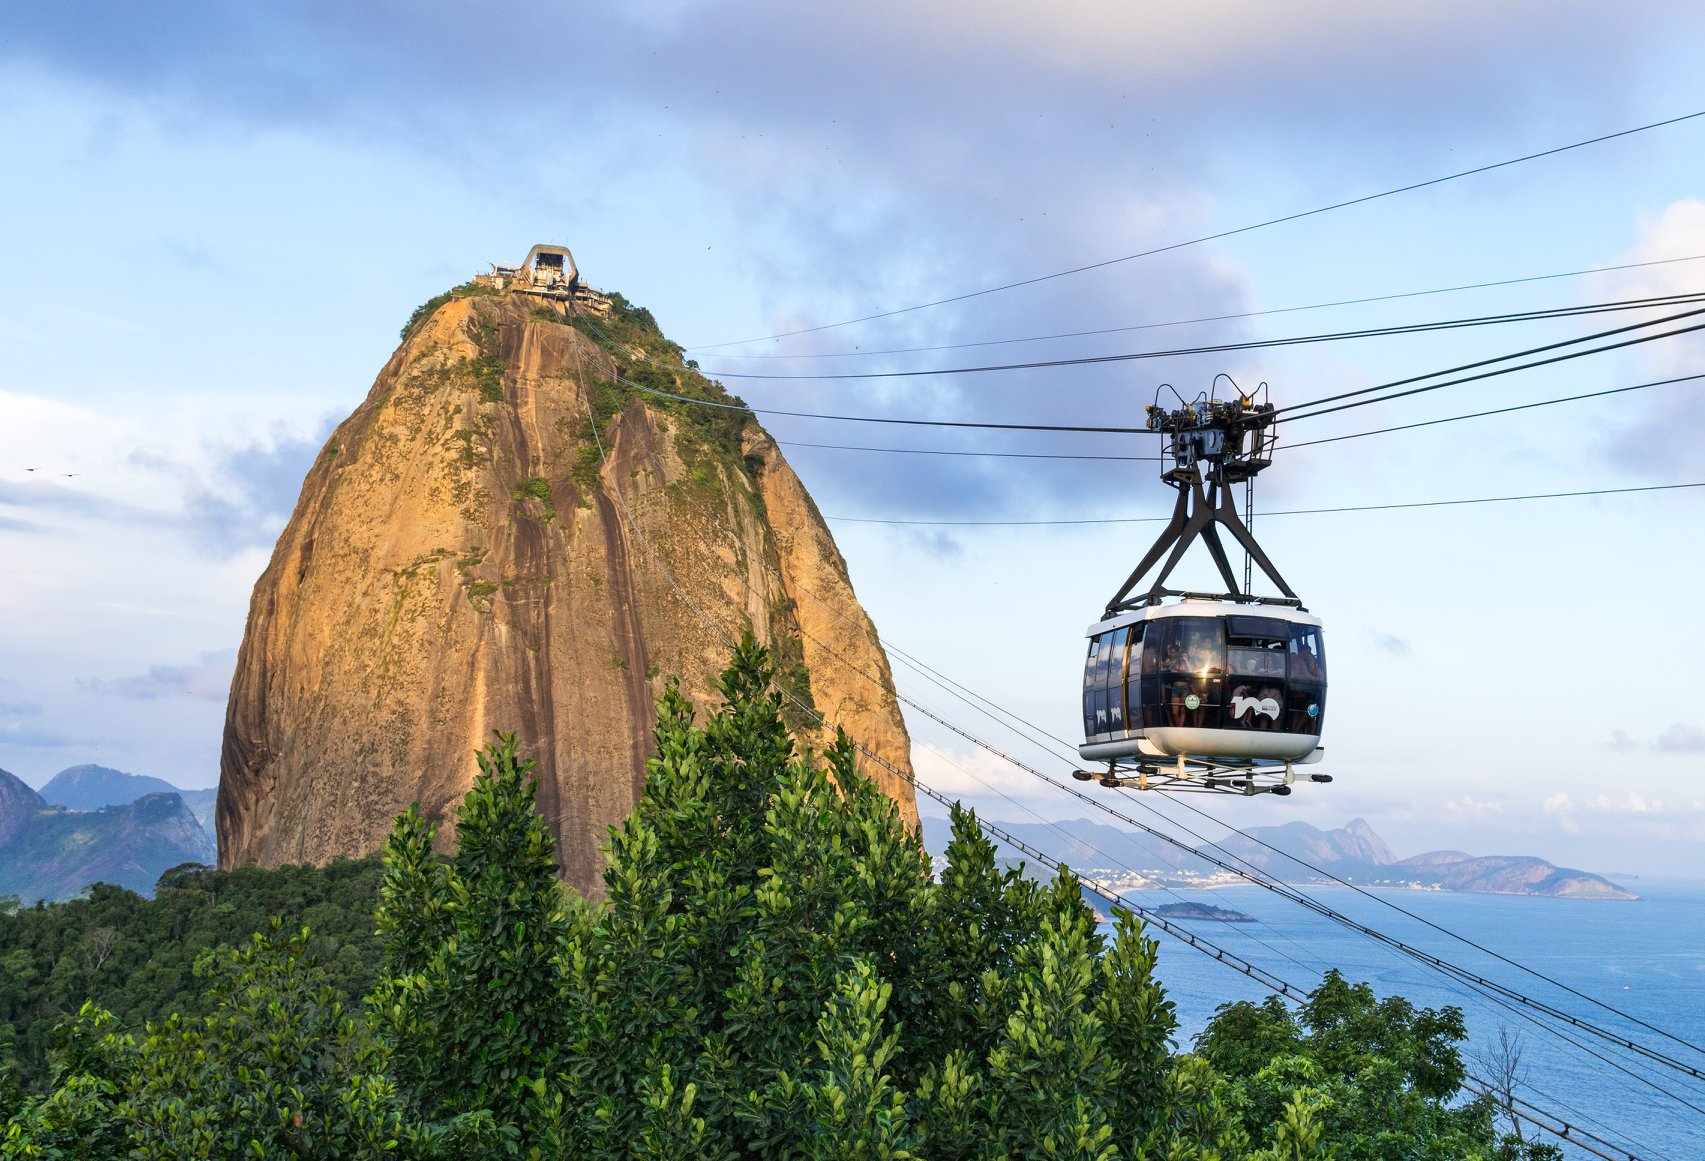 Take a sky tram up to the top of Sugarloaf Mountain. Helicopter tours are available from here, from which you can see gorgeous views of the entire city